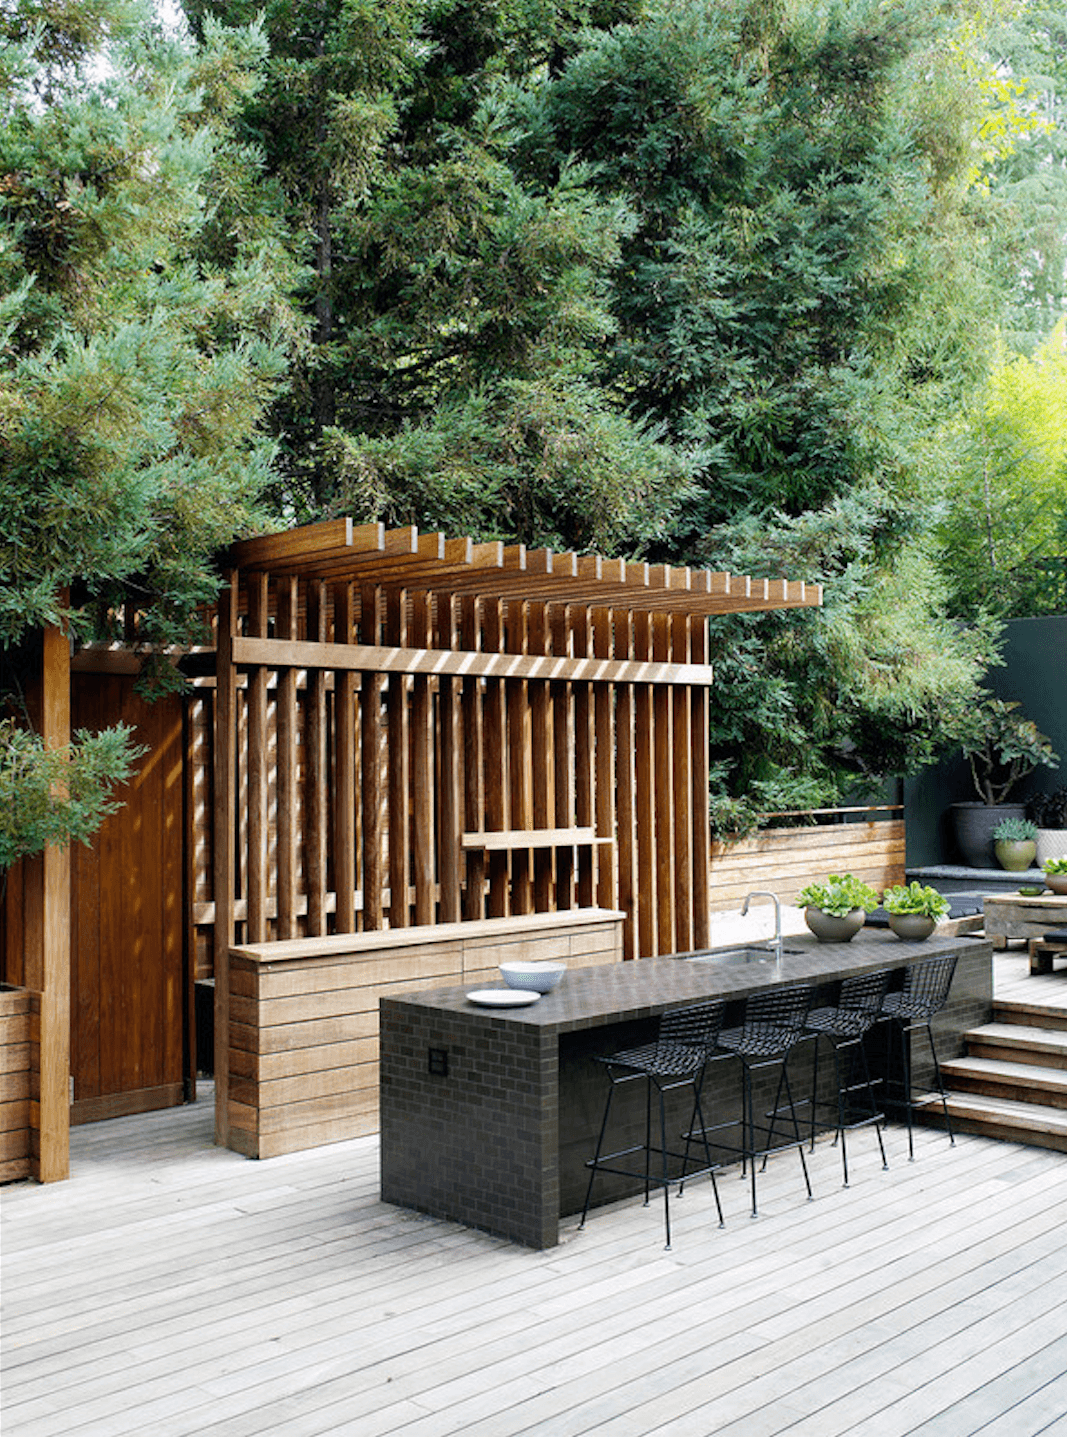 Beyond The Barbecue 15 Streamlined Kitchens For Outdoor Cooking Remodelista